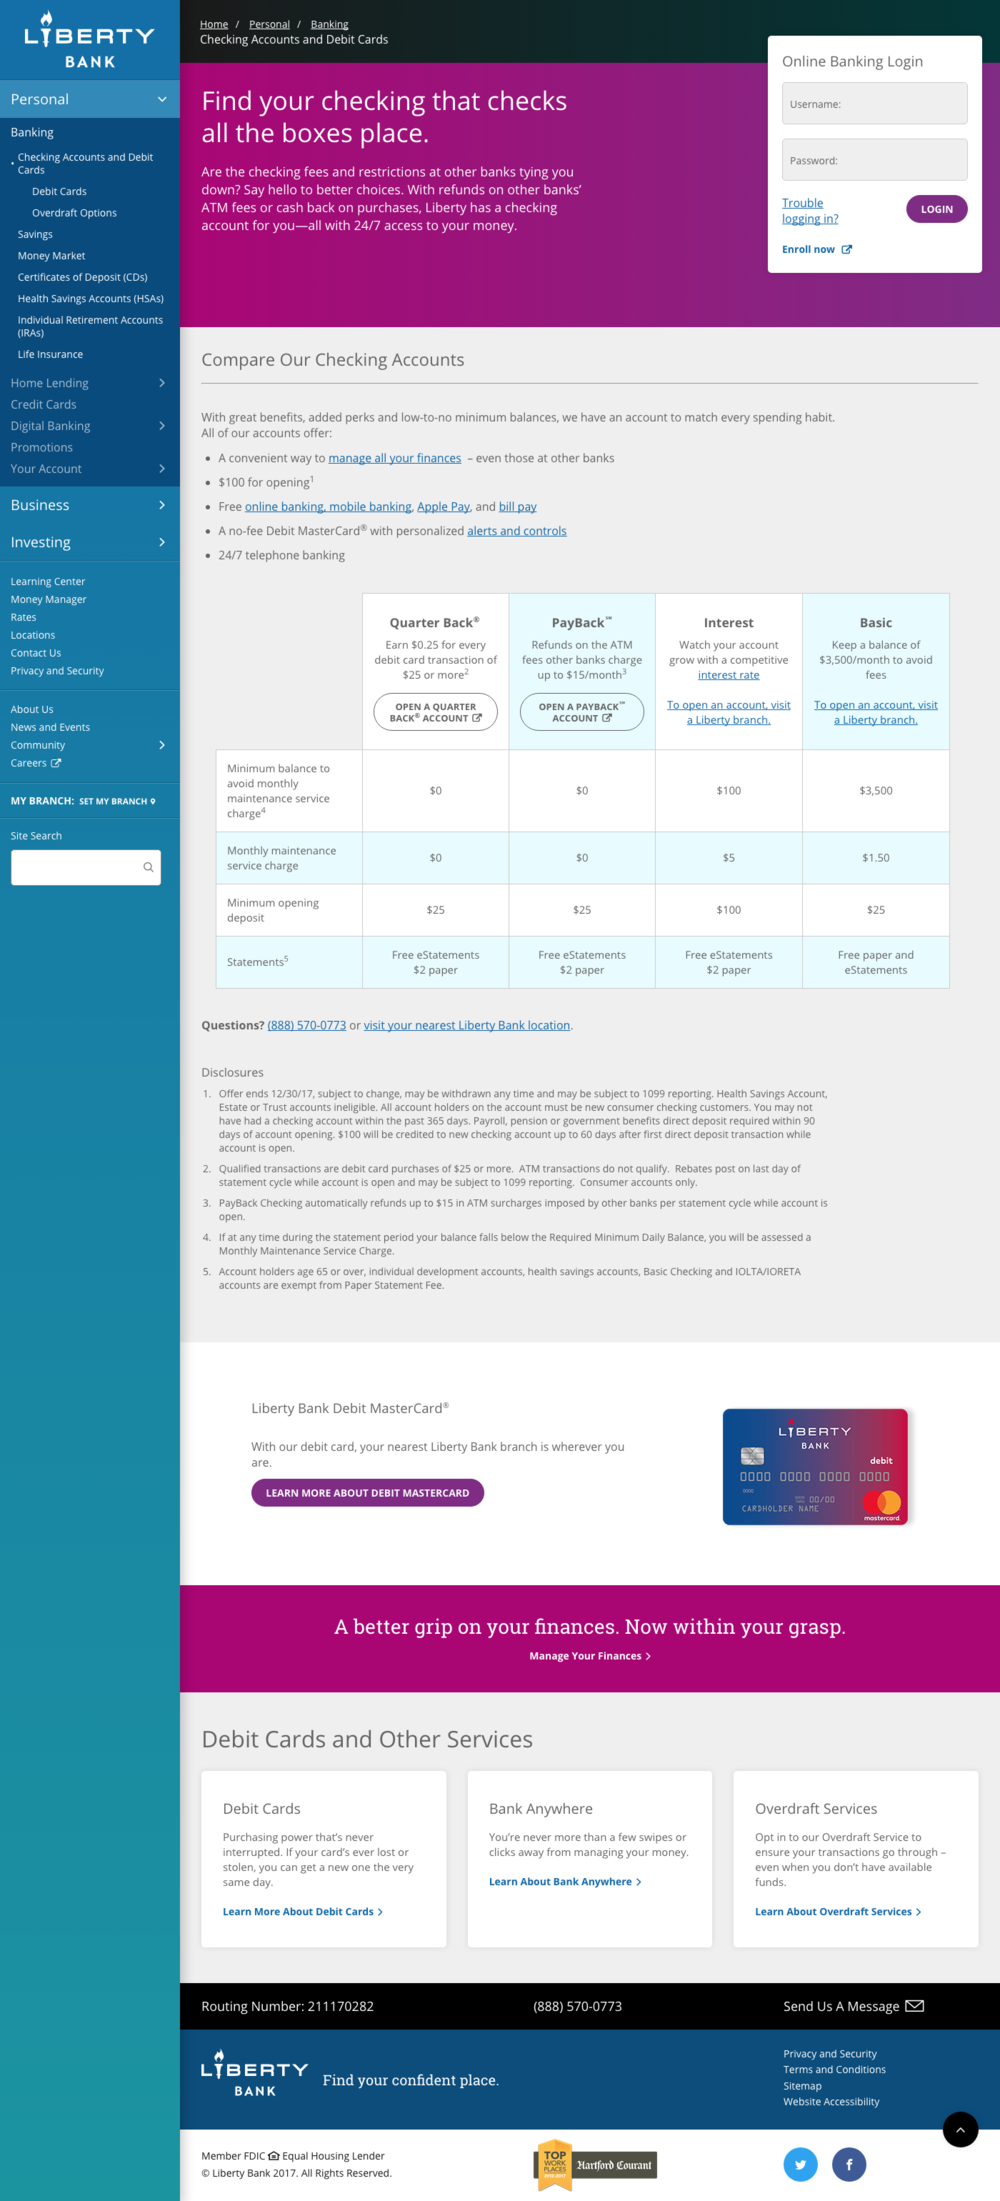 screencapture-croninlb-croninqa-personal-banking-checking-accounts-debit-cards-1509135350298.png